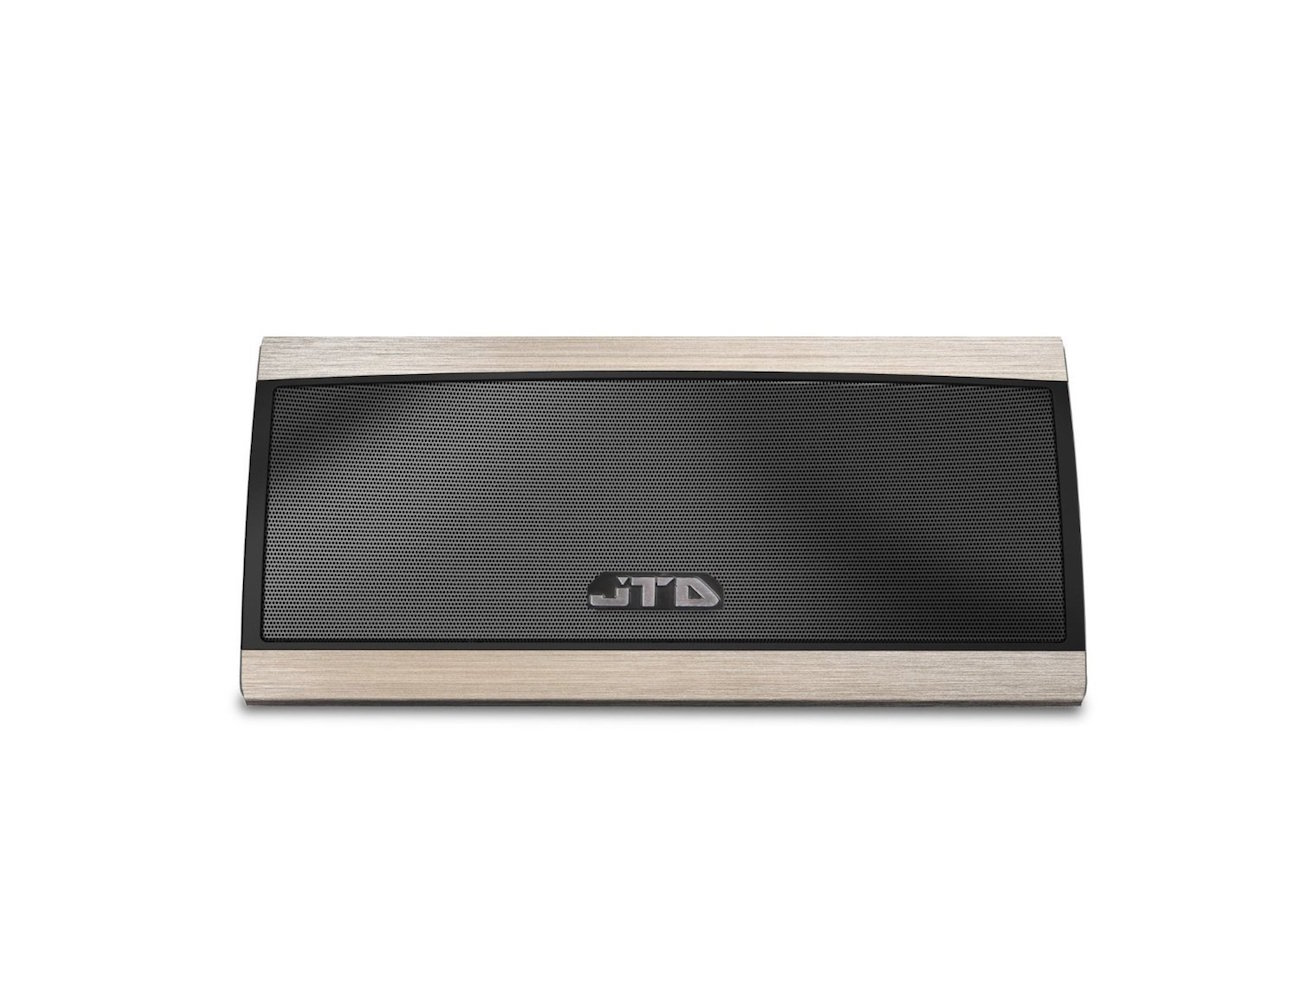 JTD ® Portable Wireless Bluetooth Speaker